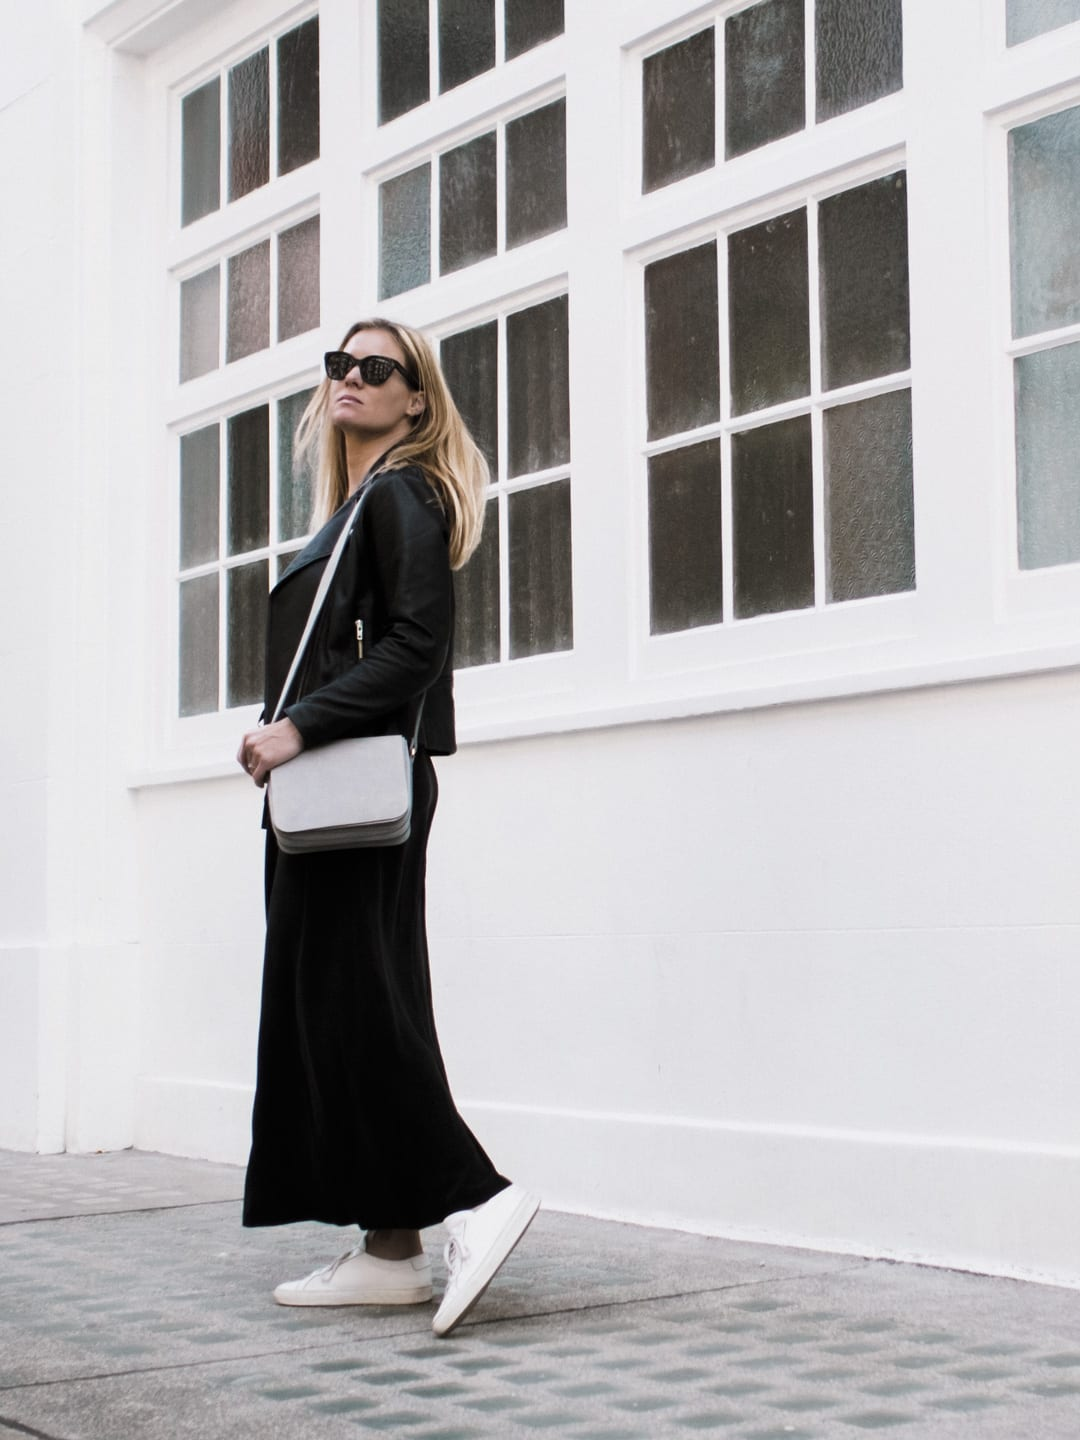 The White Company Black Silk Dress, Sandro Biker Jacket. Common Projects & Baia Trio Bag